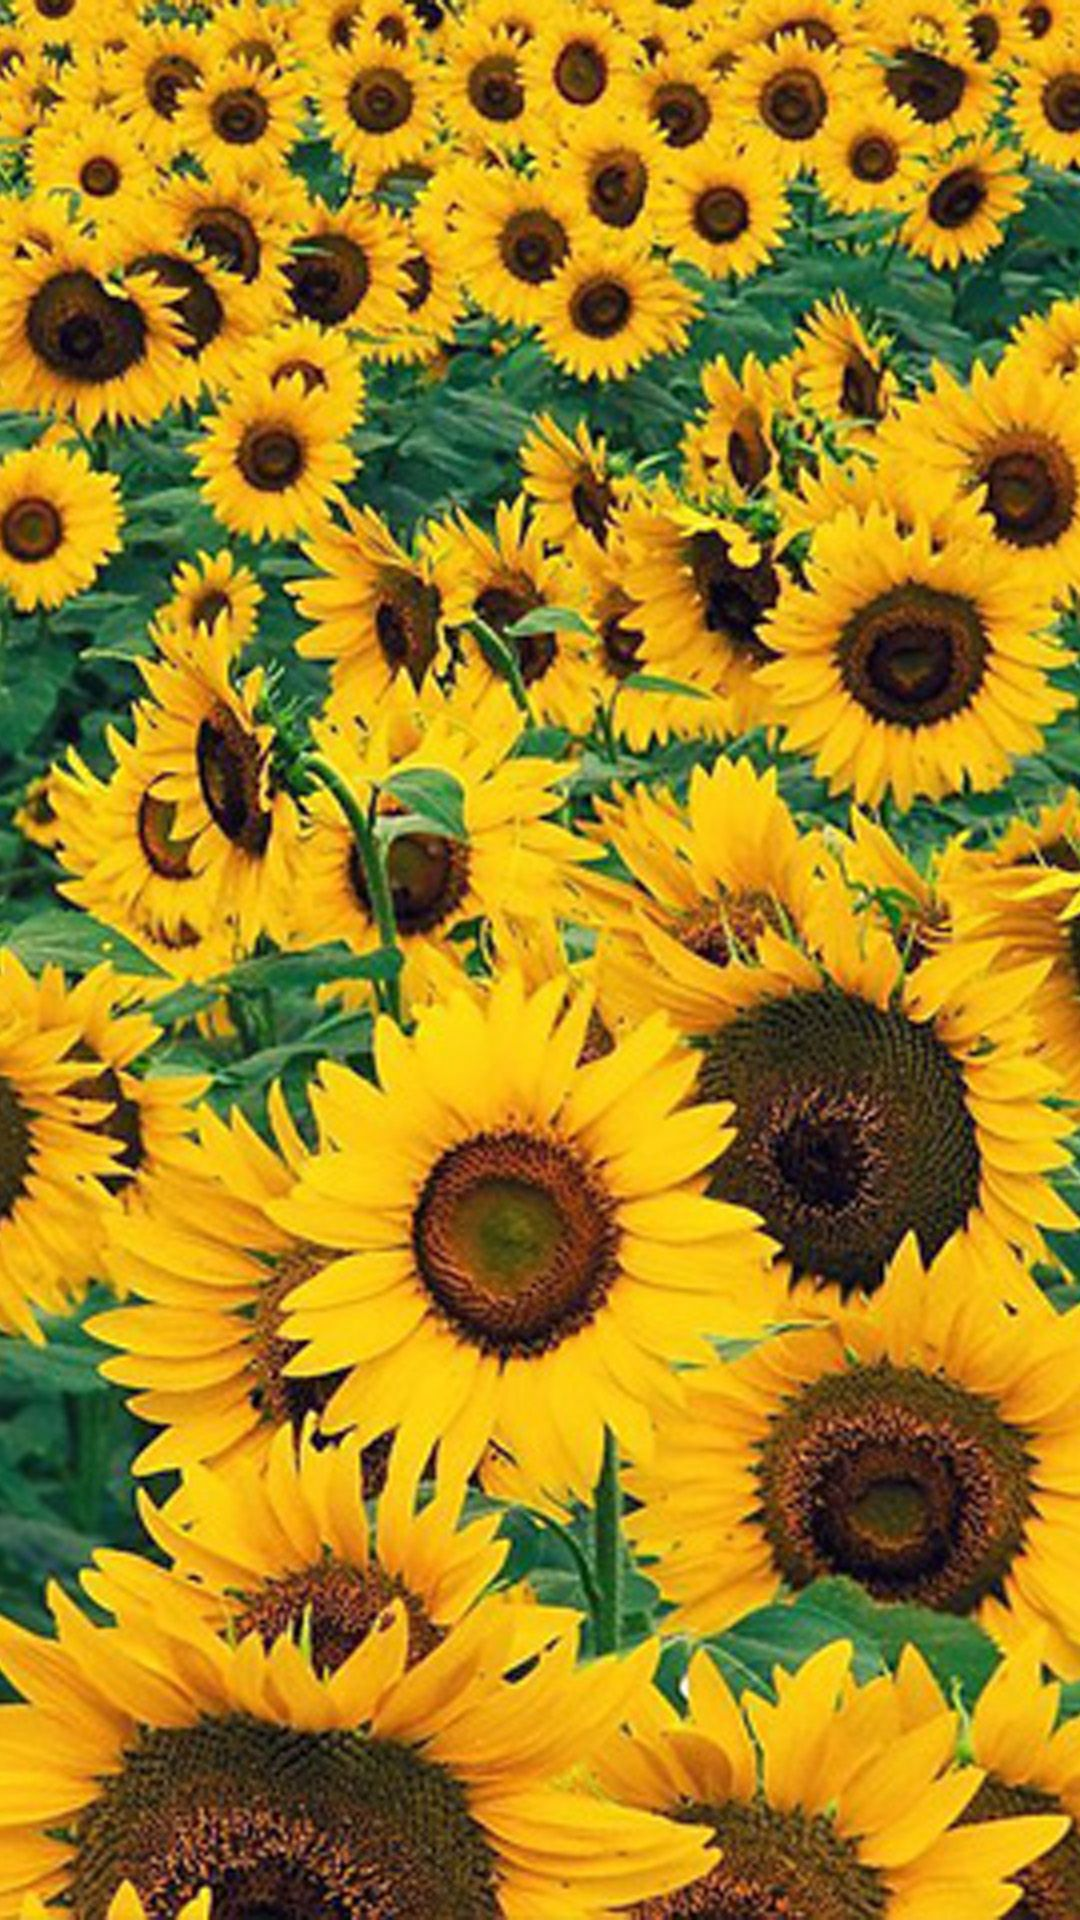 Sunflower Iphone Wallpapers Top Free Sunflower Iphone